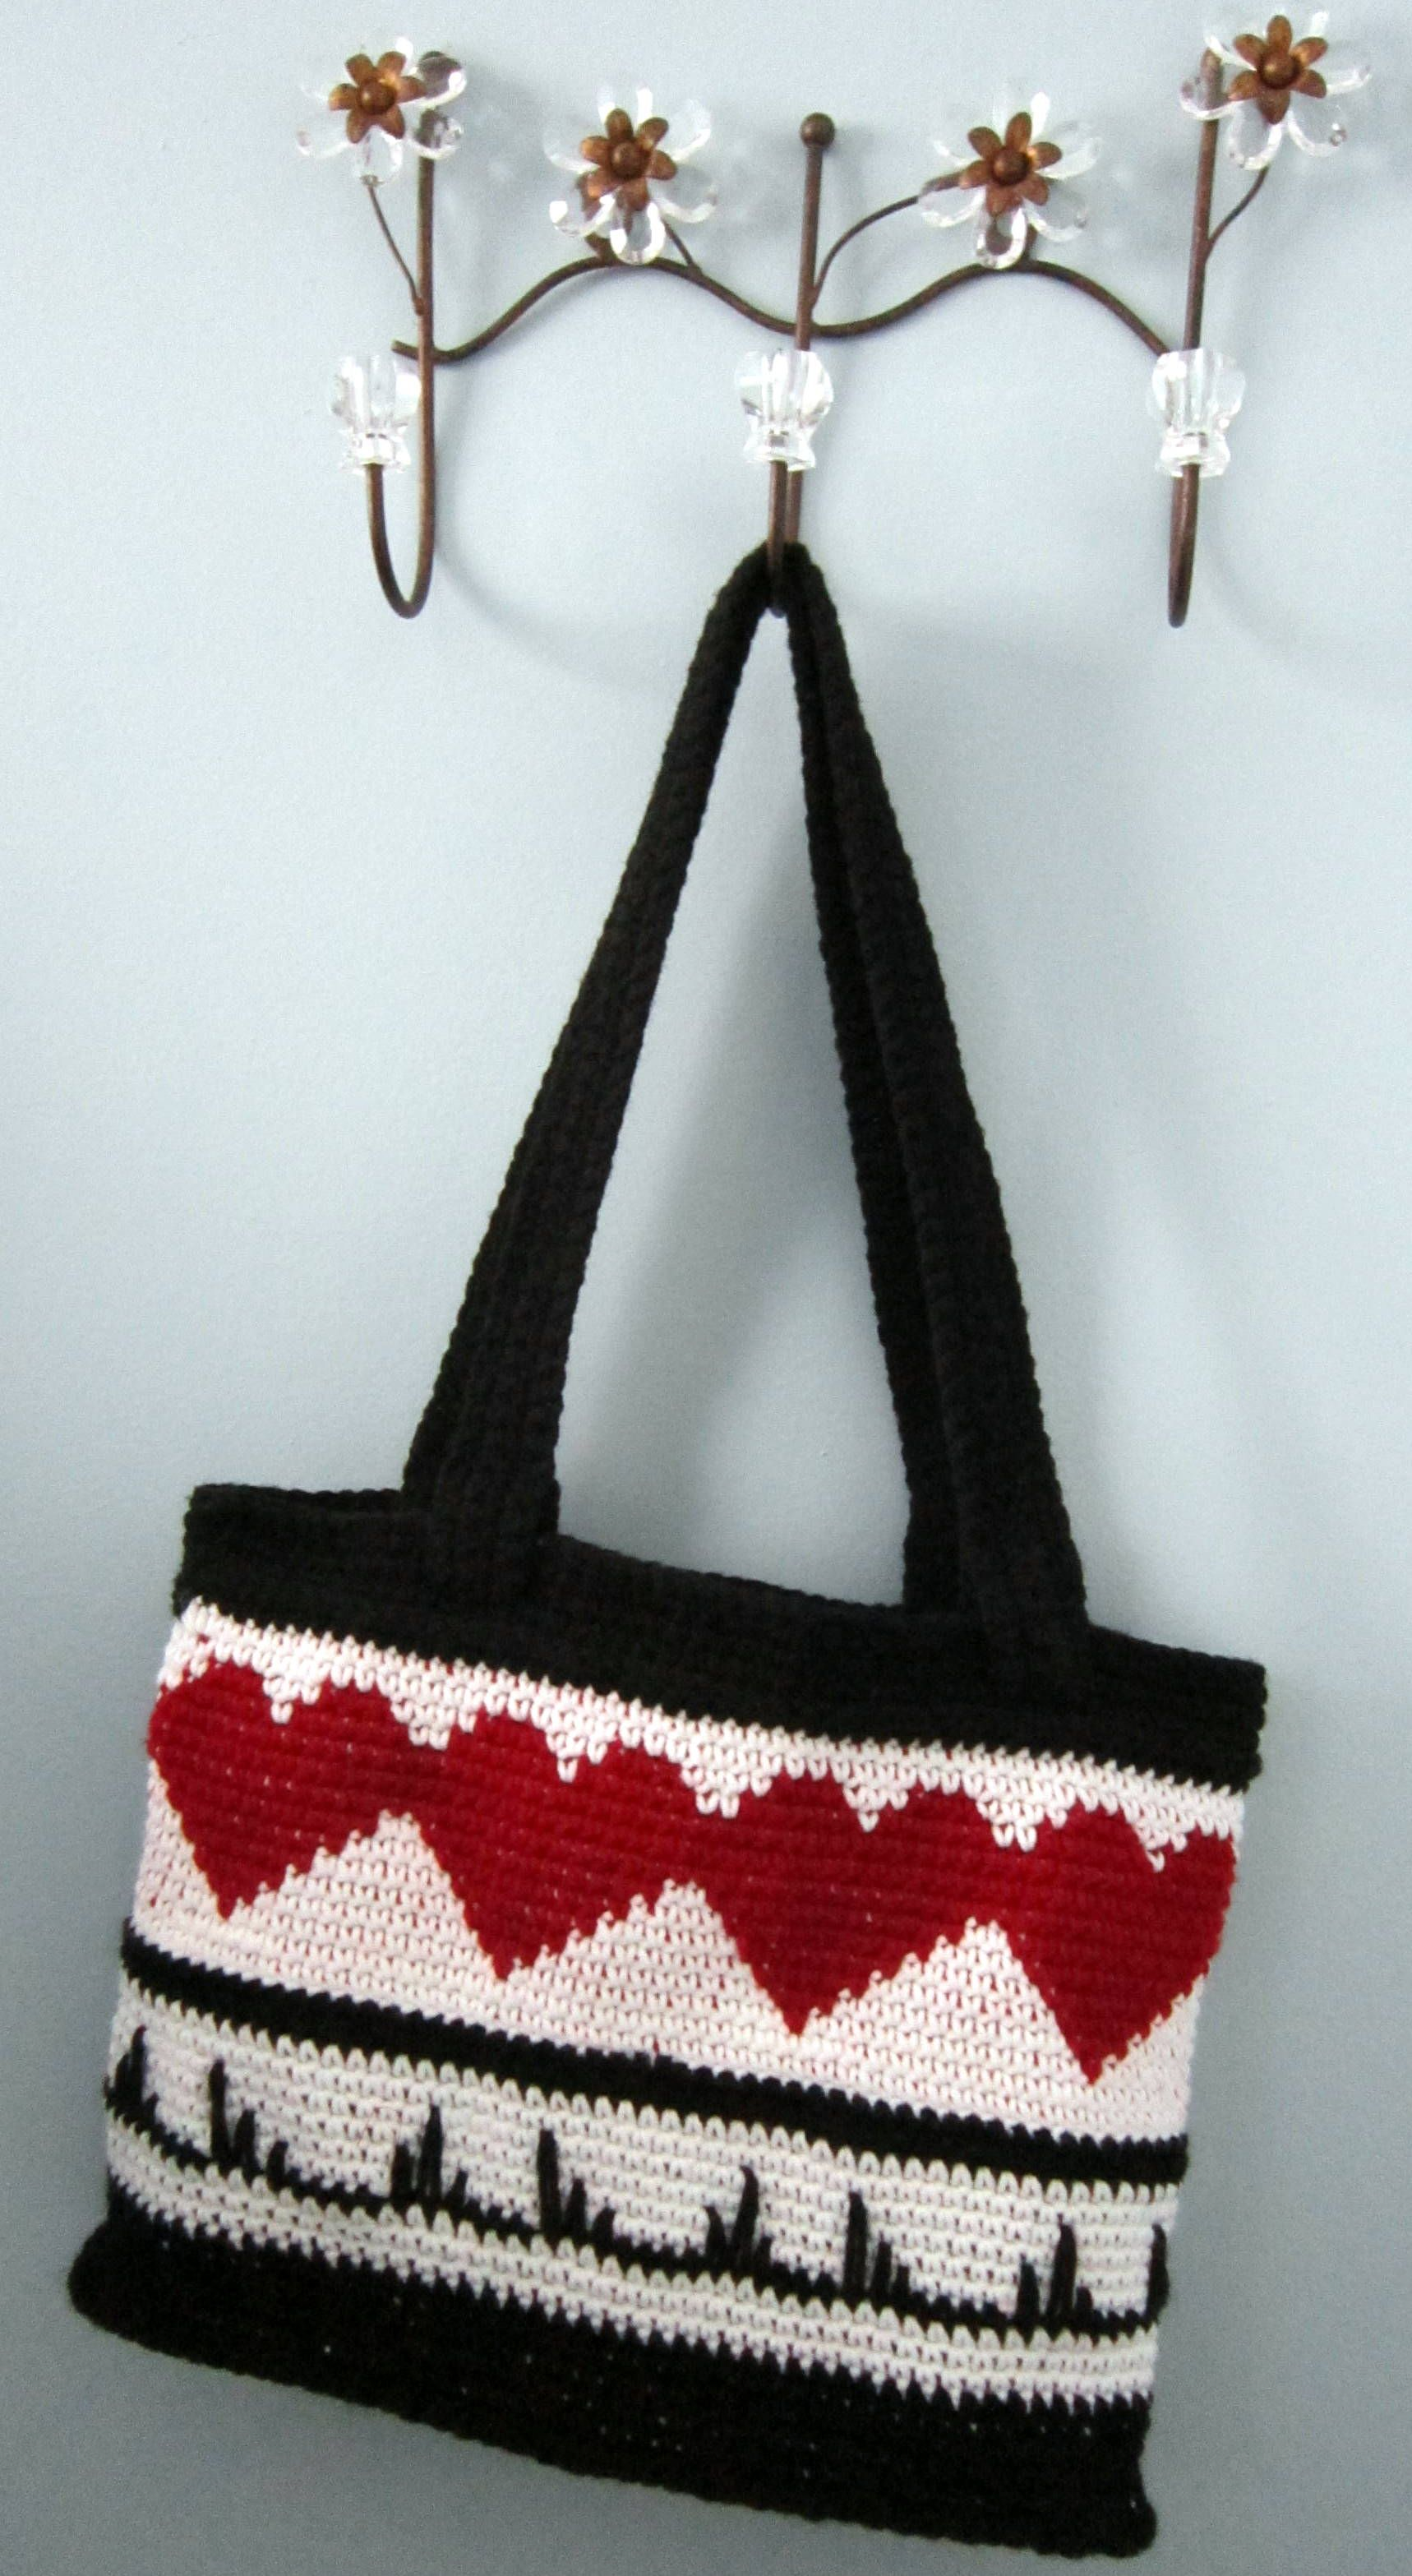 Heart throb1 tote free pattern at wolf crochetwordpress tote free pattern at wolf crochetwordpress bankloansurffo Gallery